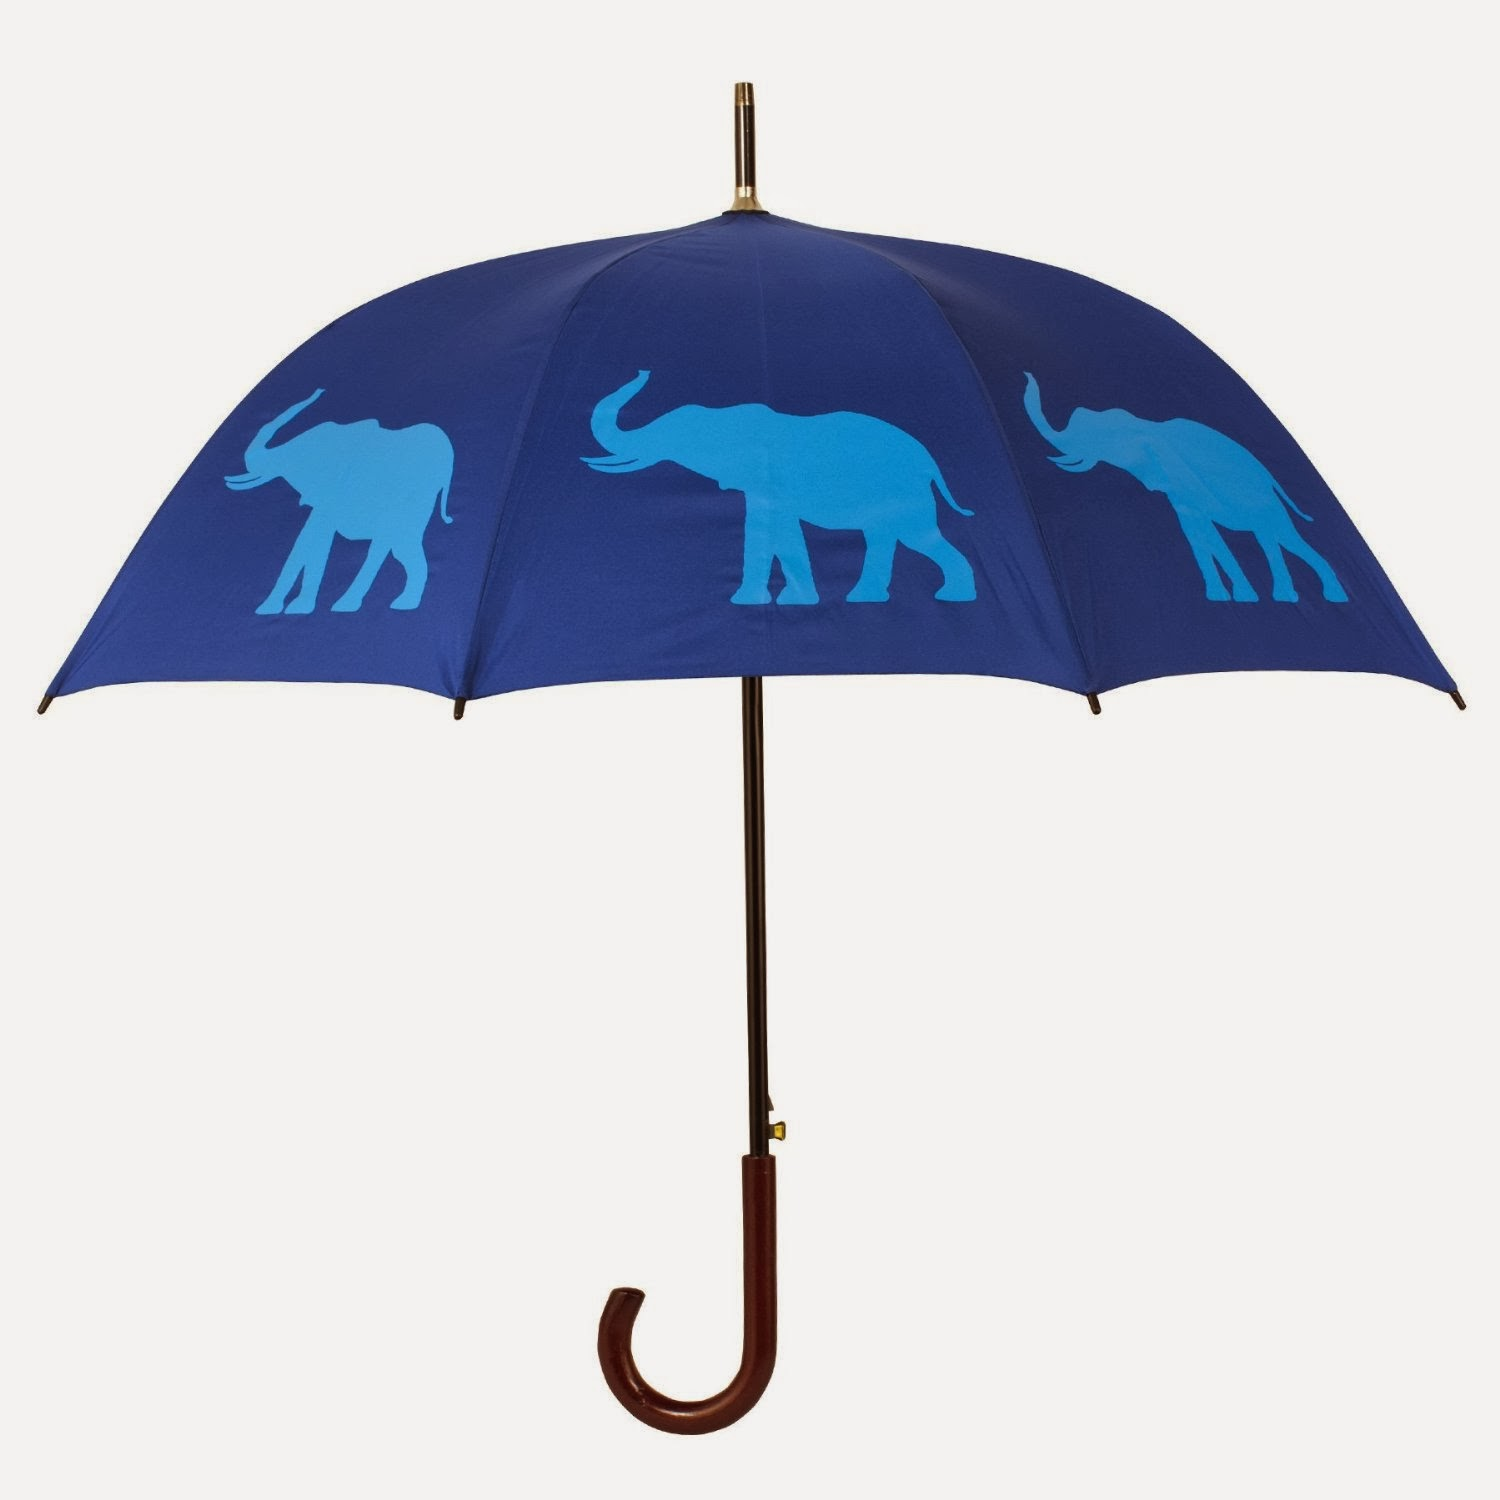 http://api.shopstyle.com/action/apiVisitRetailer?url=http%3A%2F%2Fwww.amazon.com%2FThe-San-Francisco-Umbrella-Company%2Fdp%2FB00FAI2M12%2Fref%3Dsr_1_10%3Fs%3Dpet-supplies%26ie%3DUTF8%26qid%3D1392324093%26sr%3D1-10&pid=uid1524-9203282-44&utm_medium=widget&utm_source=Product+Link